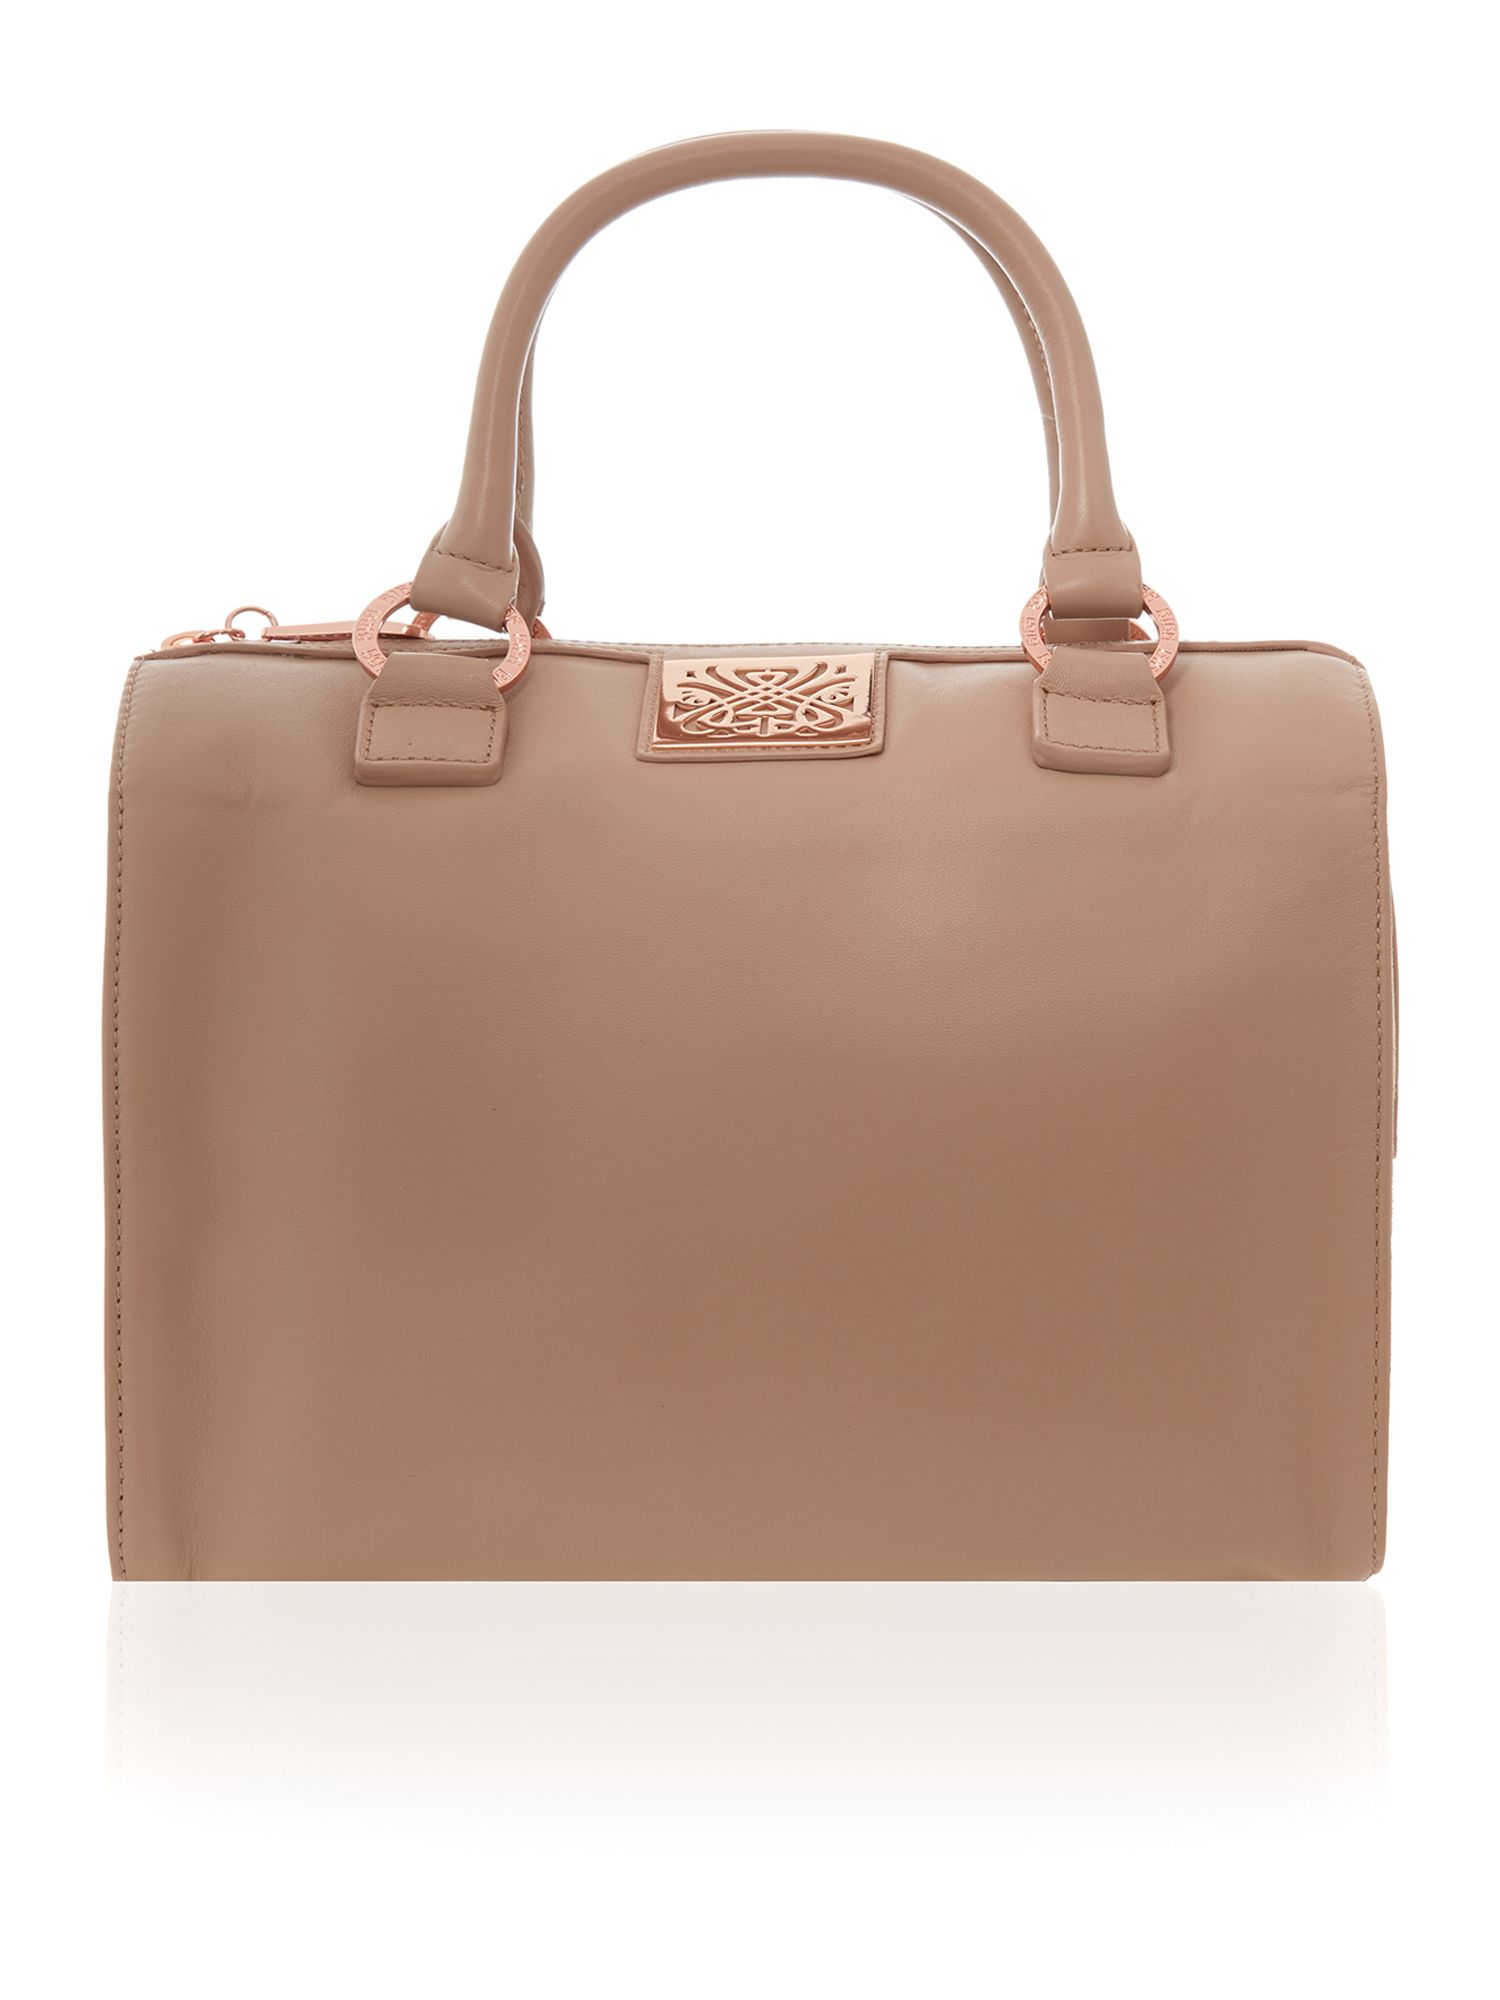 Sam square bowler bag